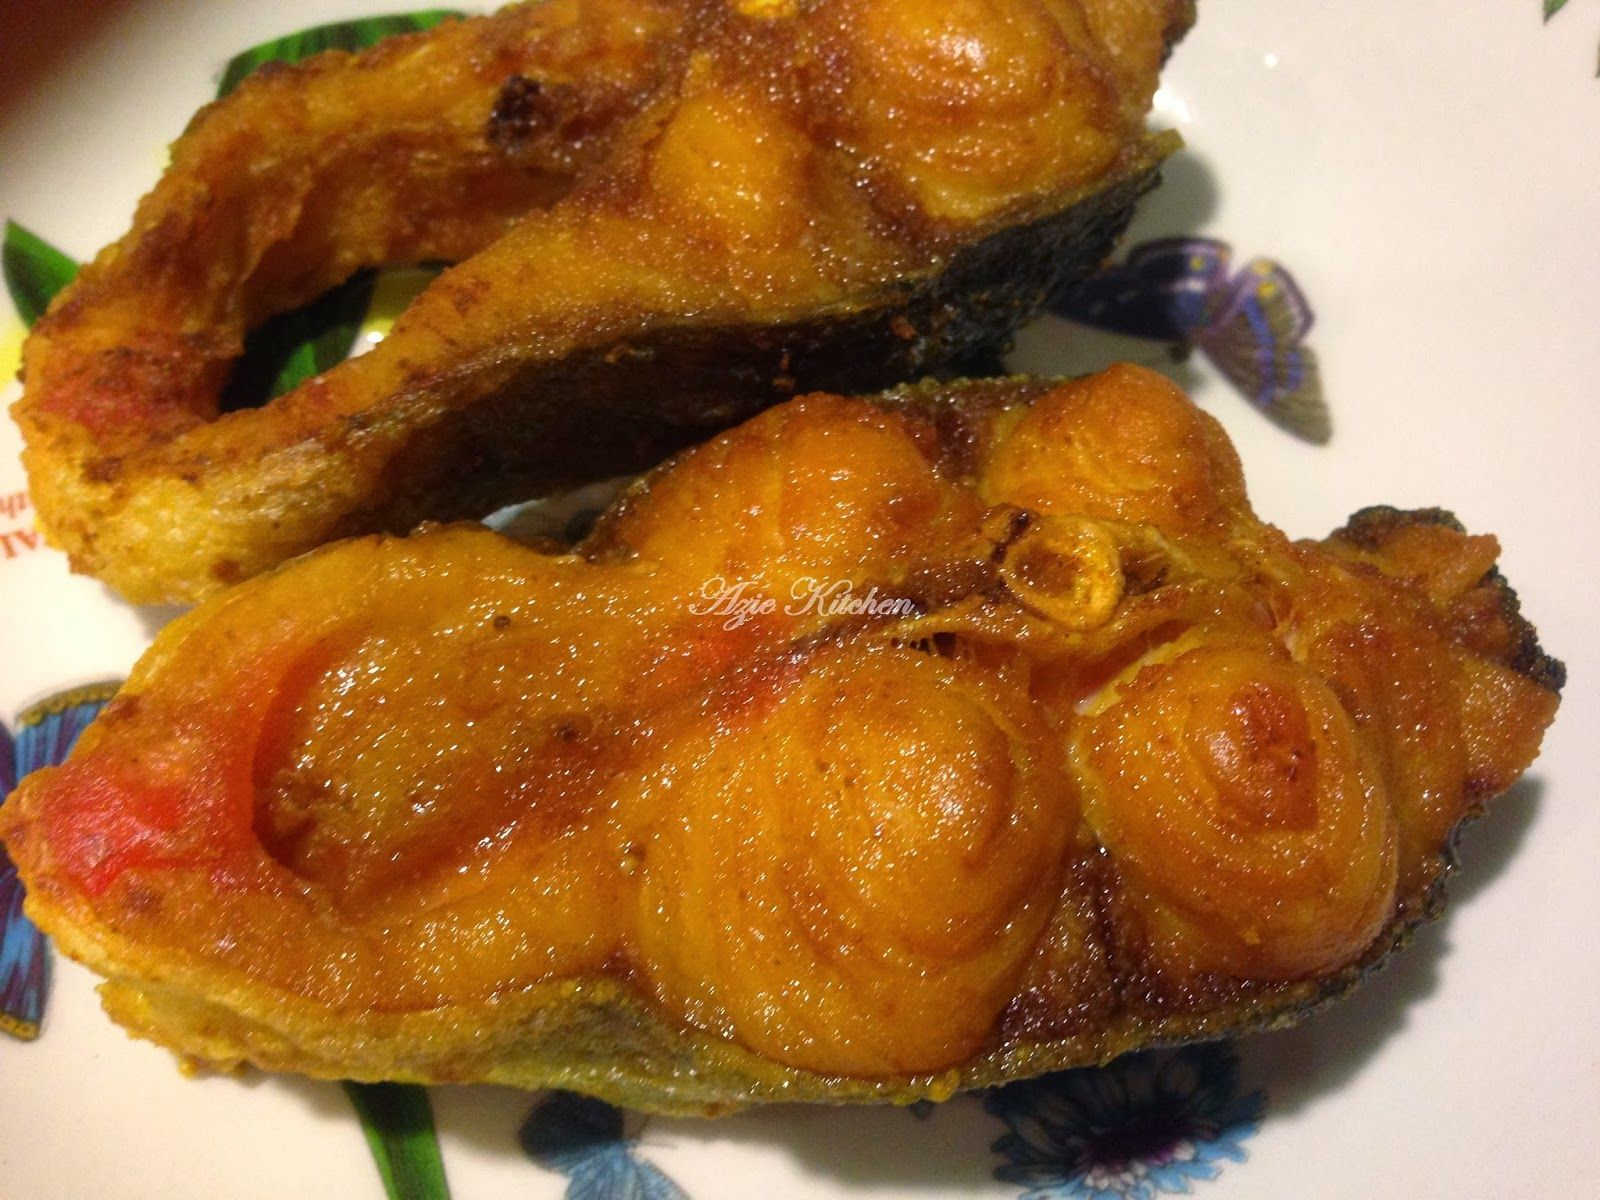 Azie Kitchen: Ikan Patin Buah Goreng Pun Soodaap | Malay food ...